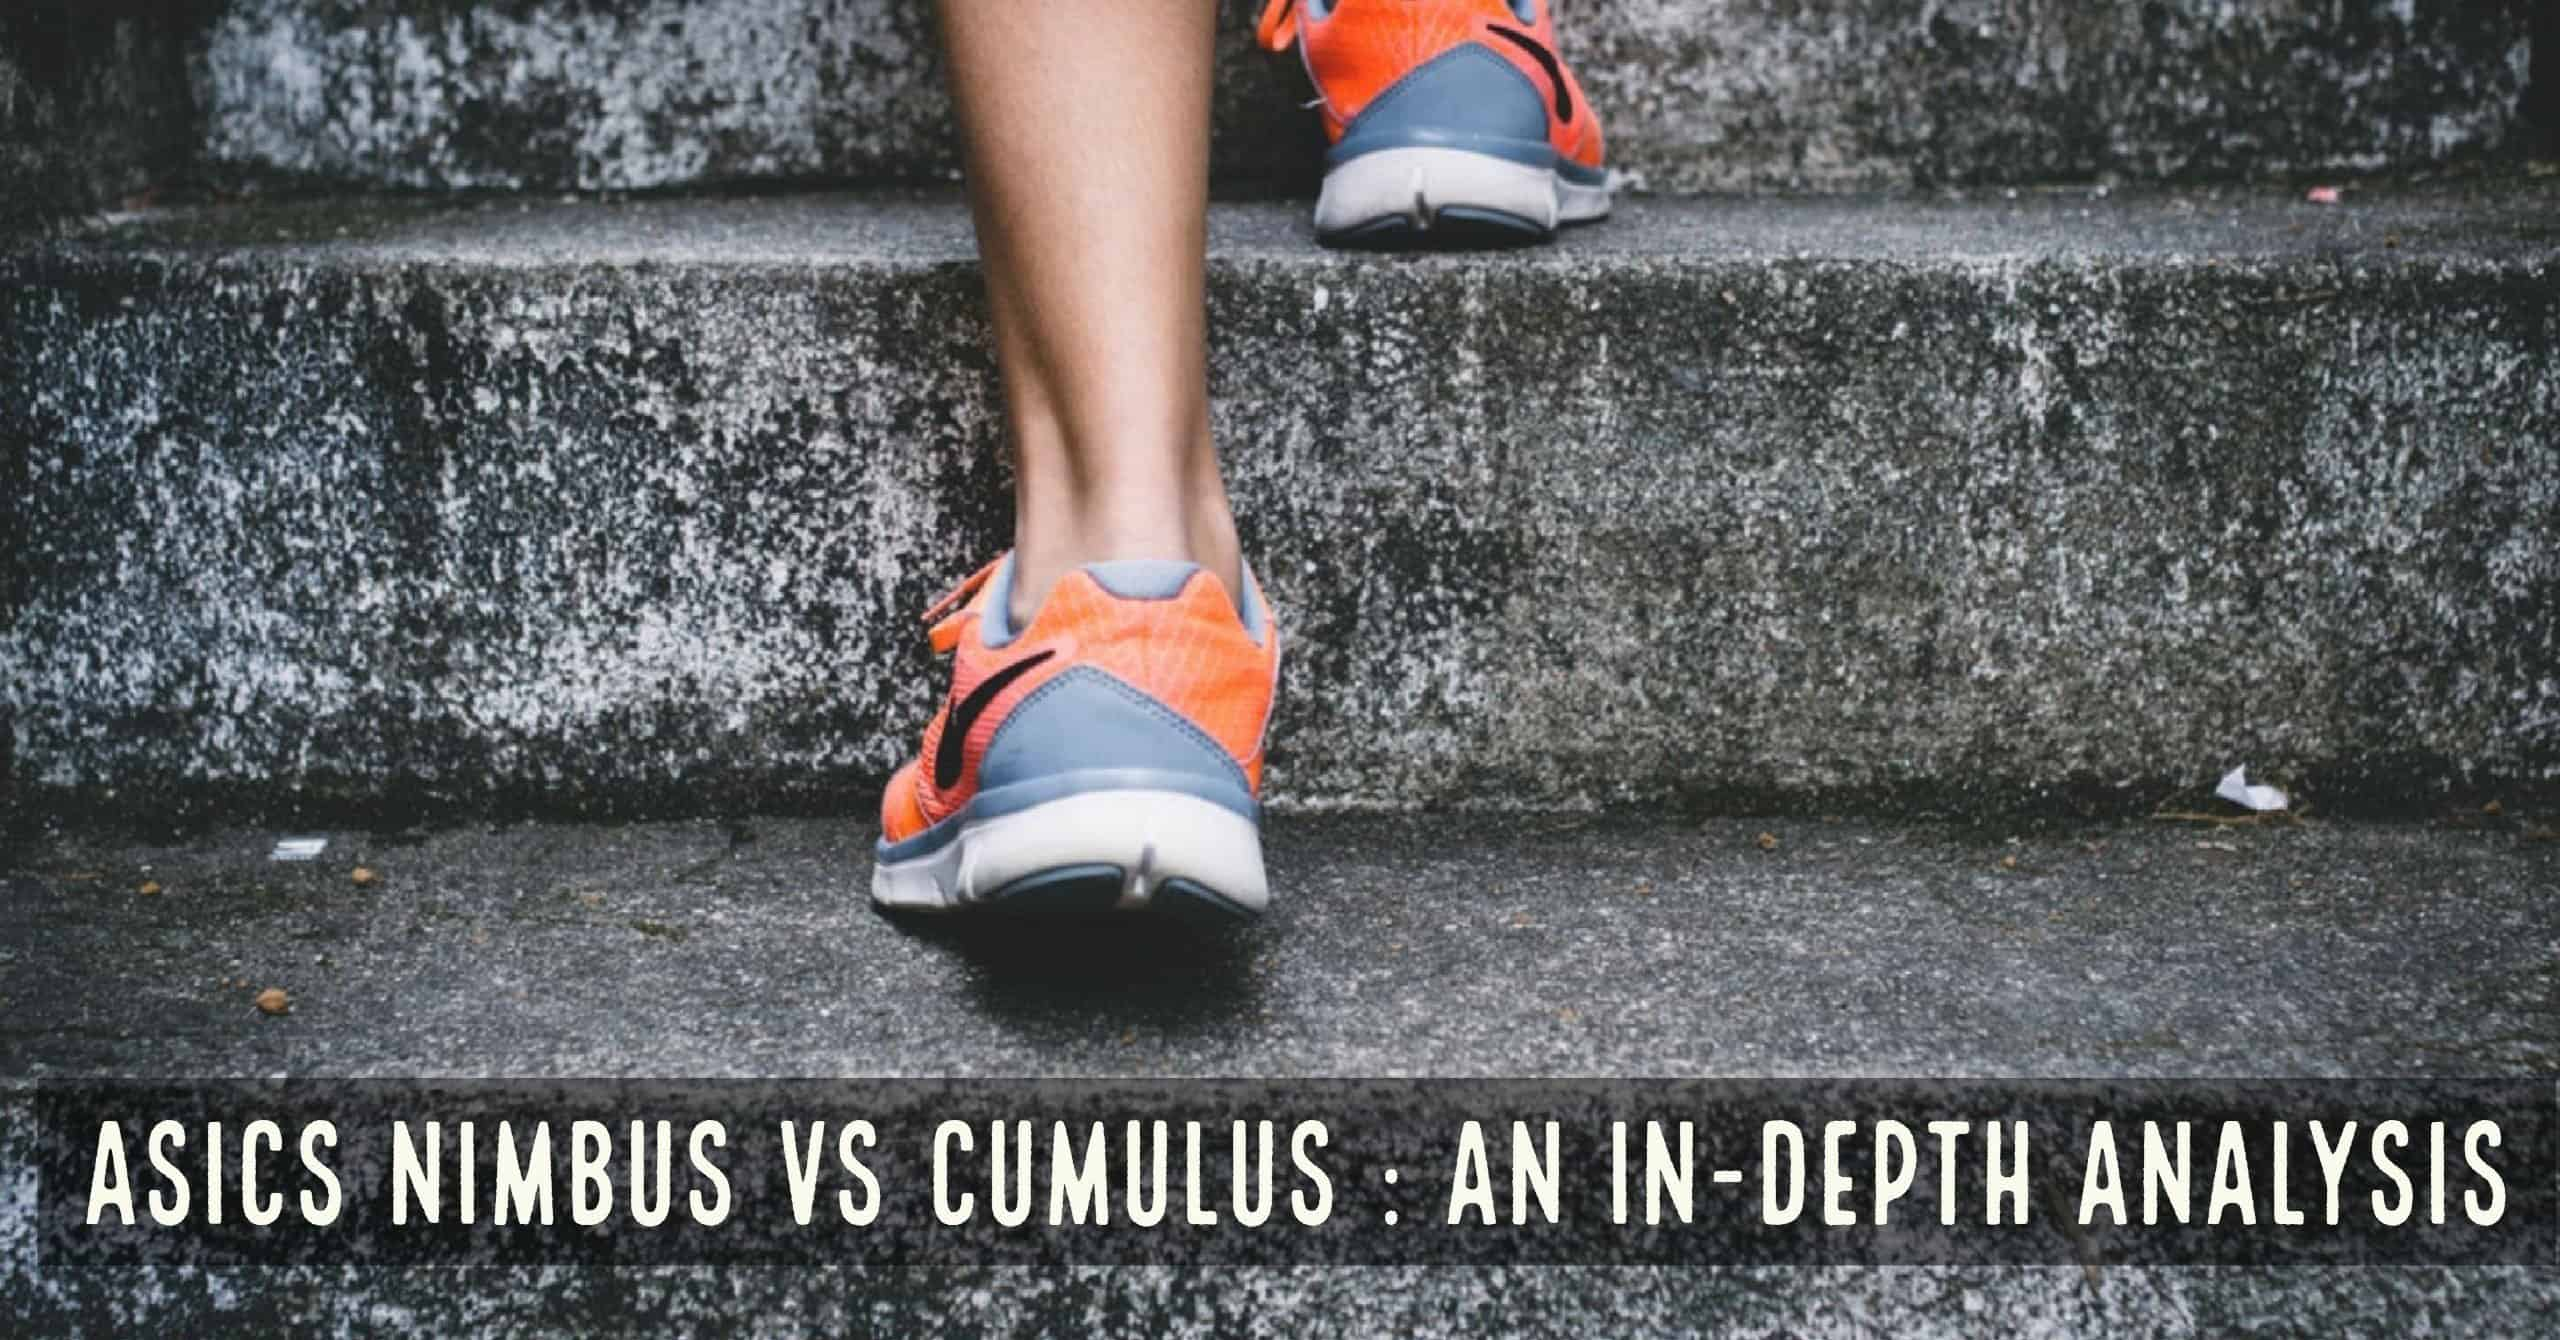 Persistencia diluido Abrazadera  Asics Nimbus vs Cumulus: Which is Right for You? - Train for a 5K.com